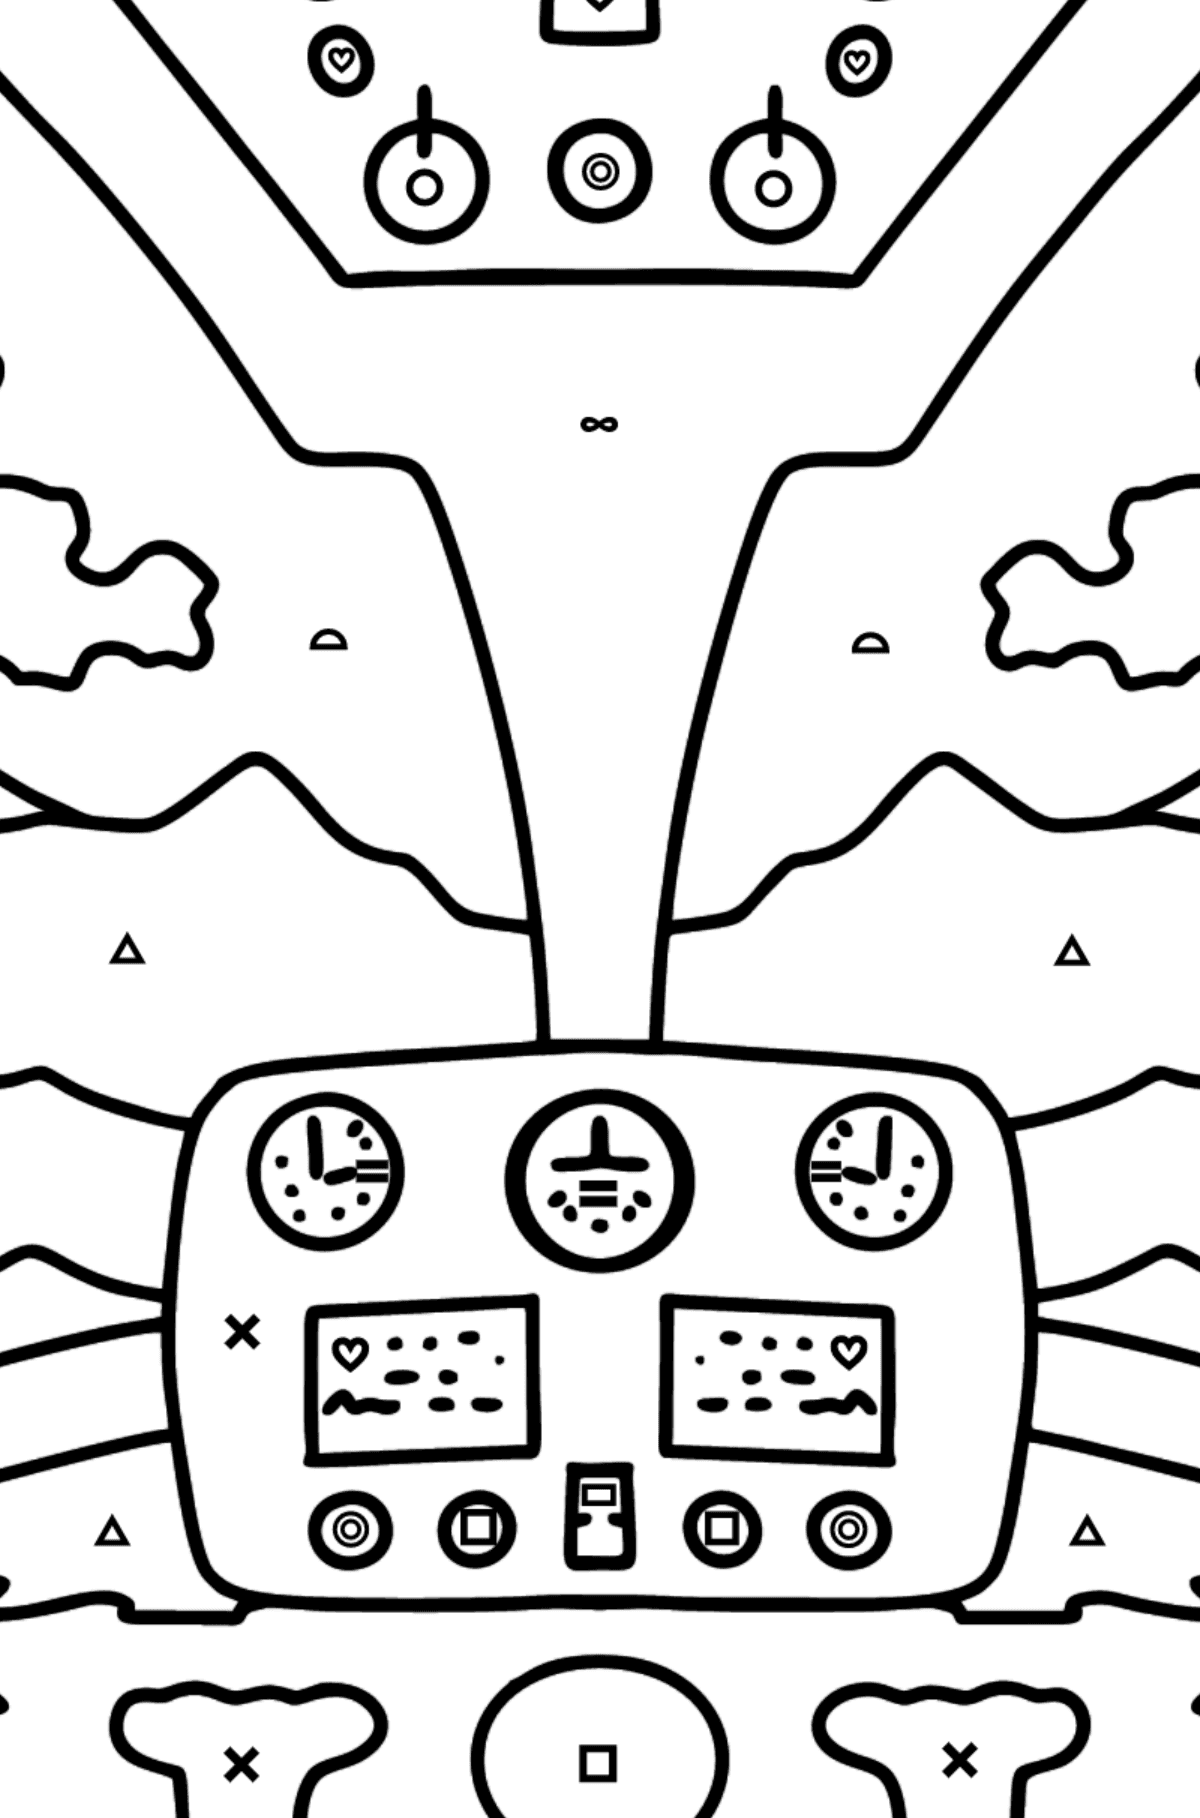 Helicopter Wheel coloring page - Coloring by Symbols and Geometric Shapes for Kids